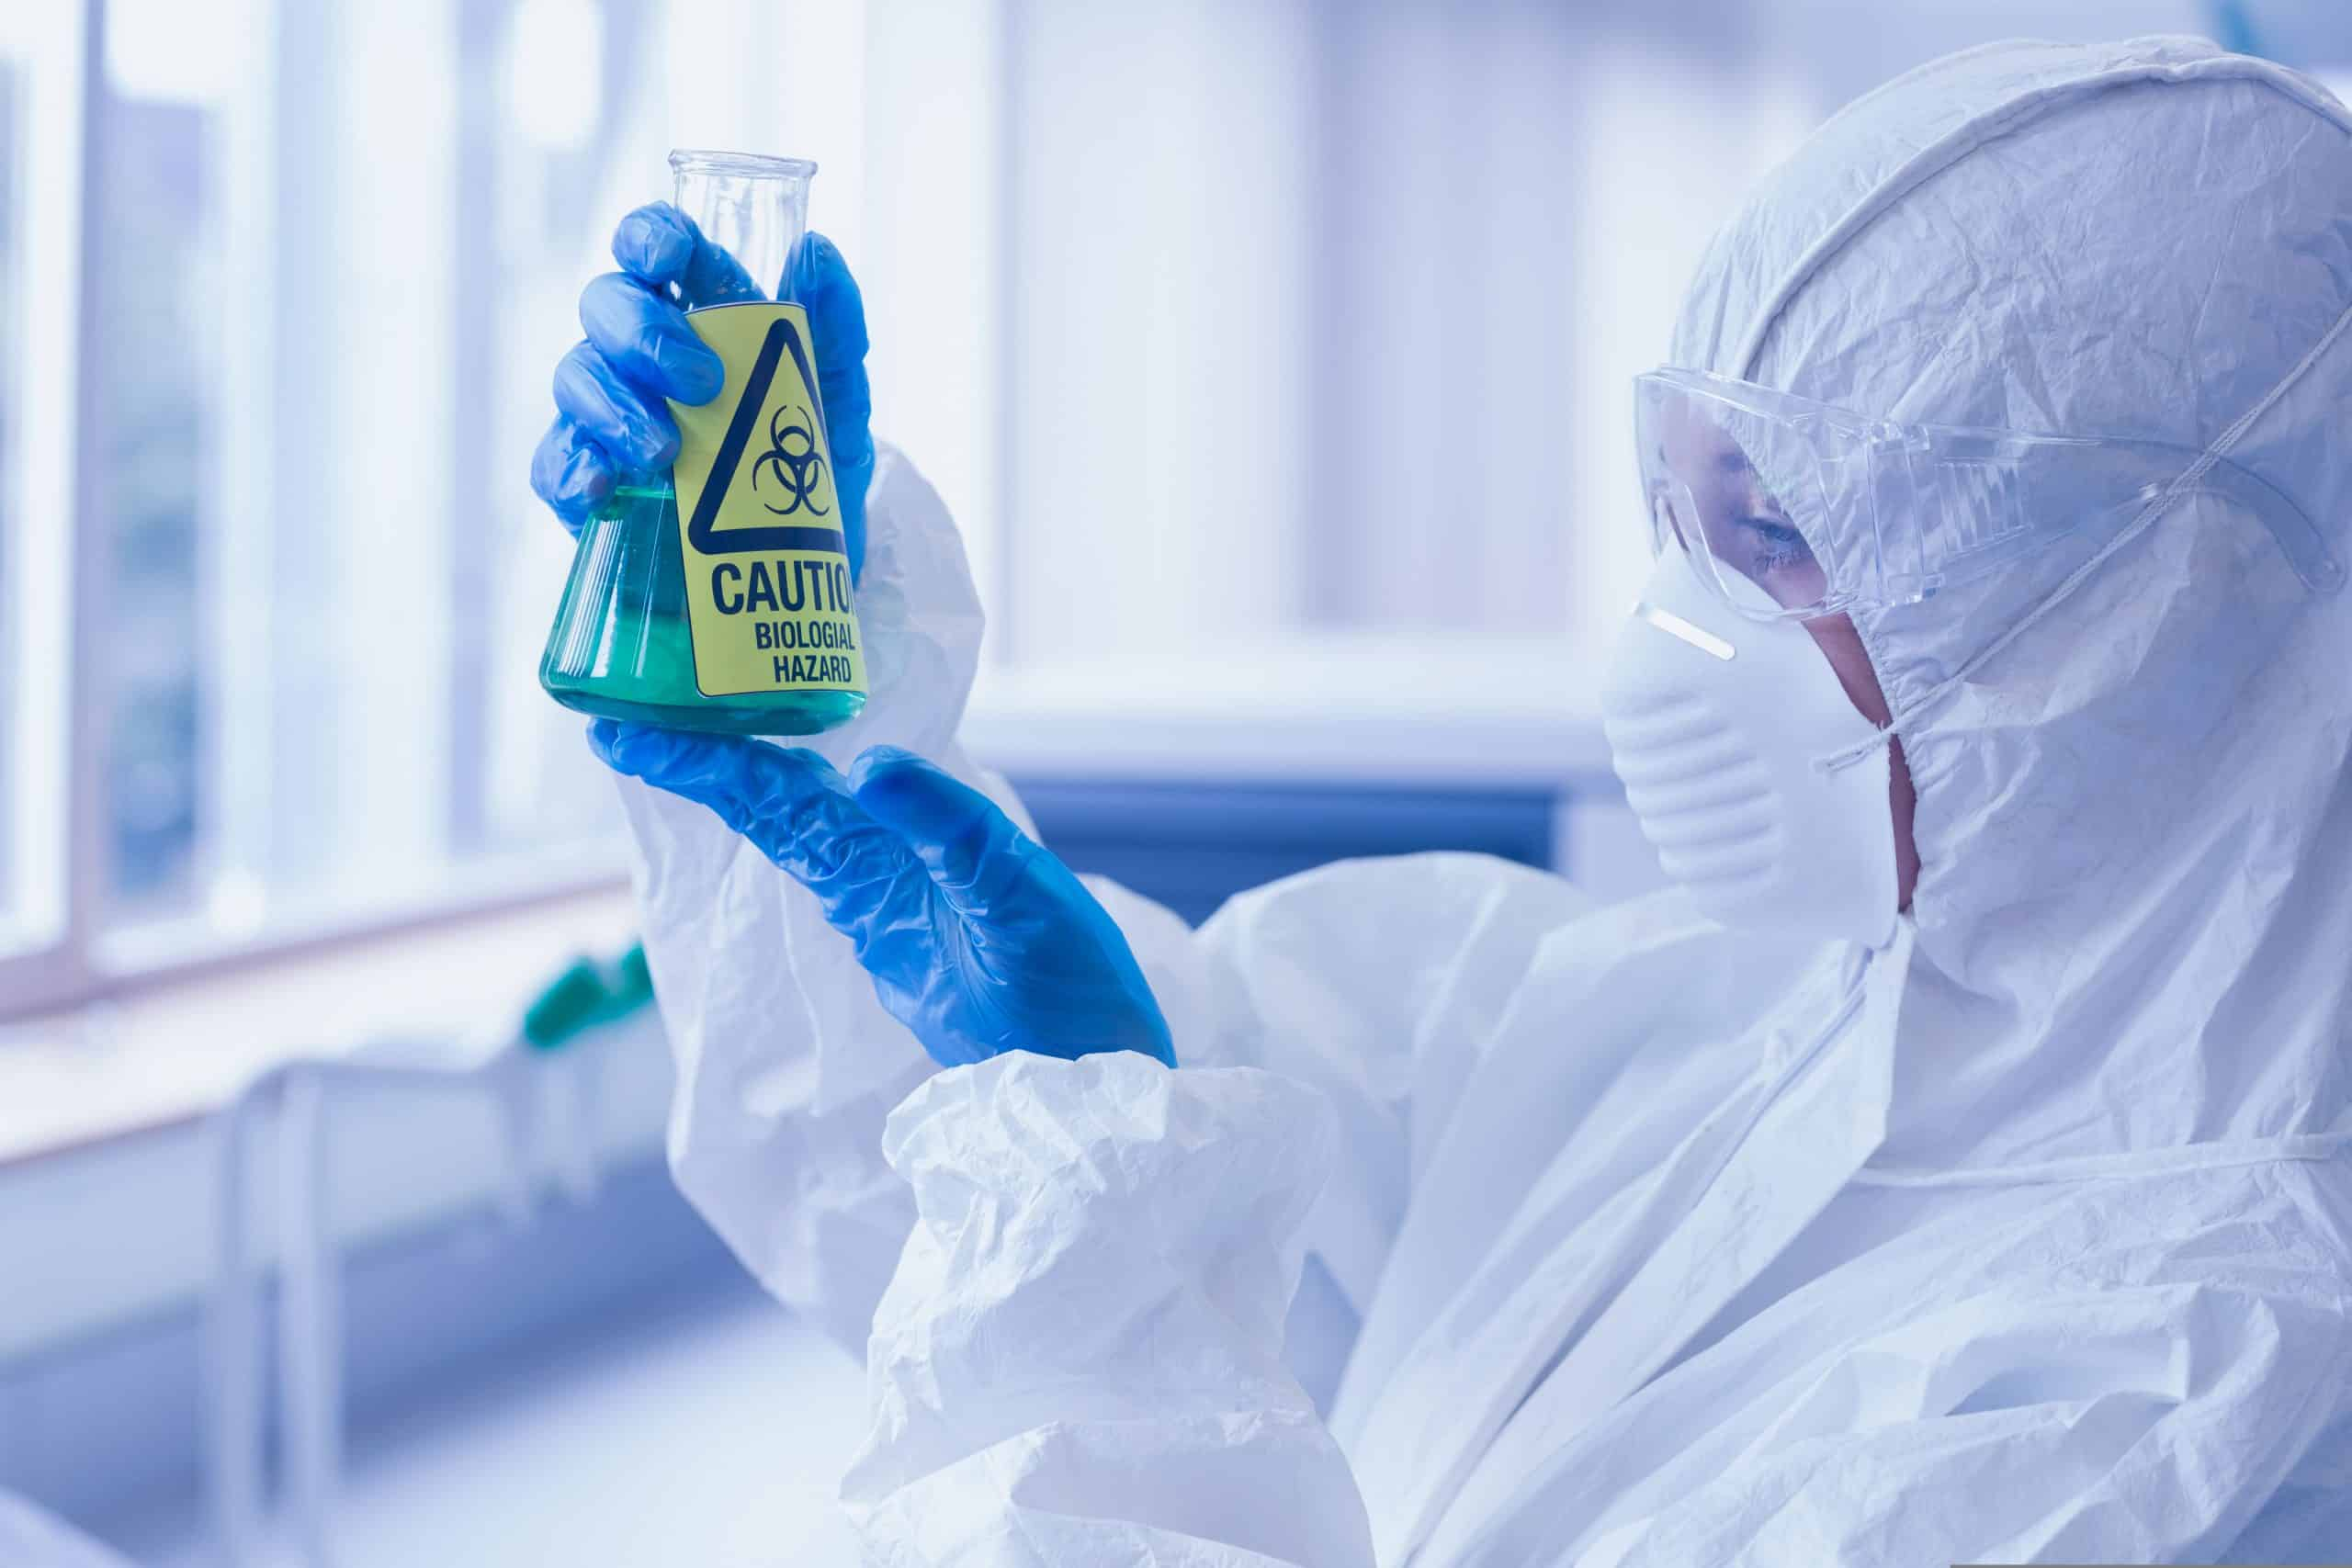 Close-up side view of a scientist in protective suit looking at hazardous blue chemical